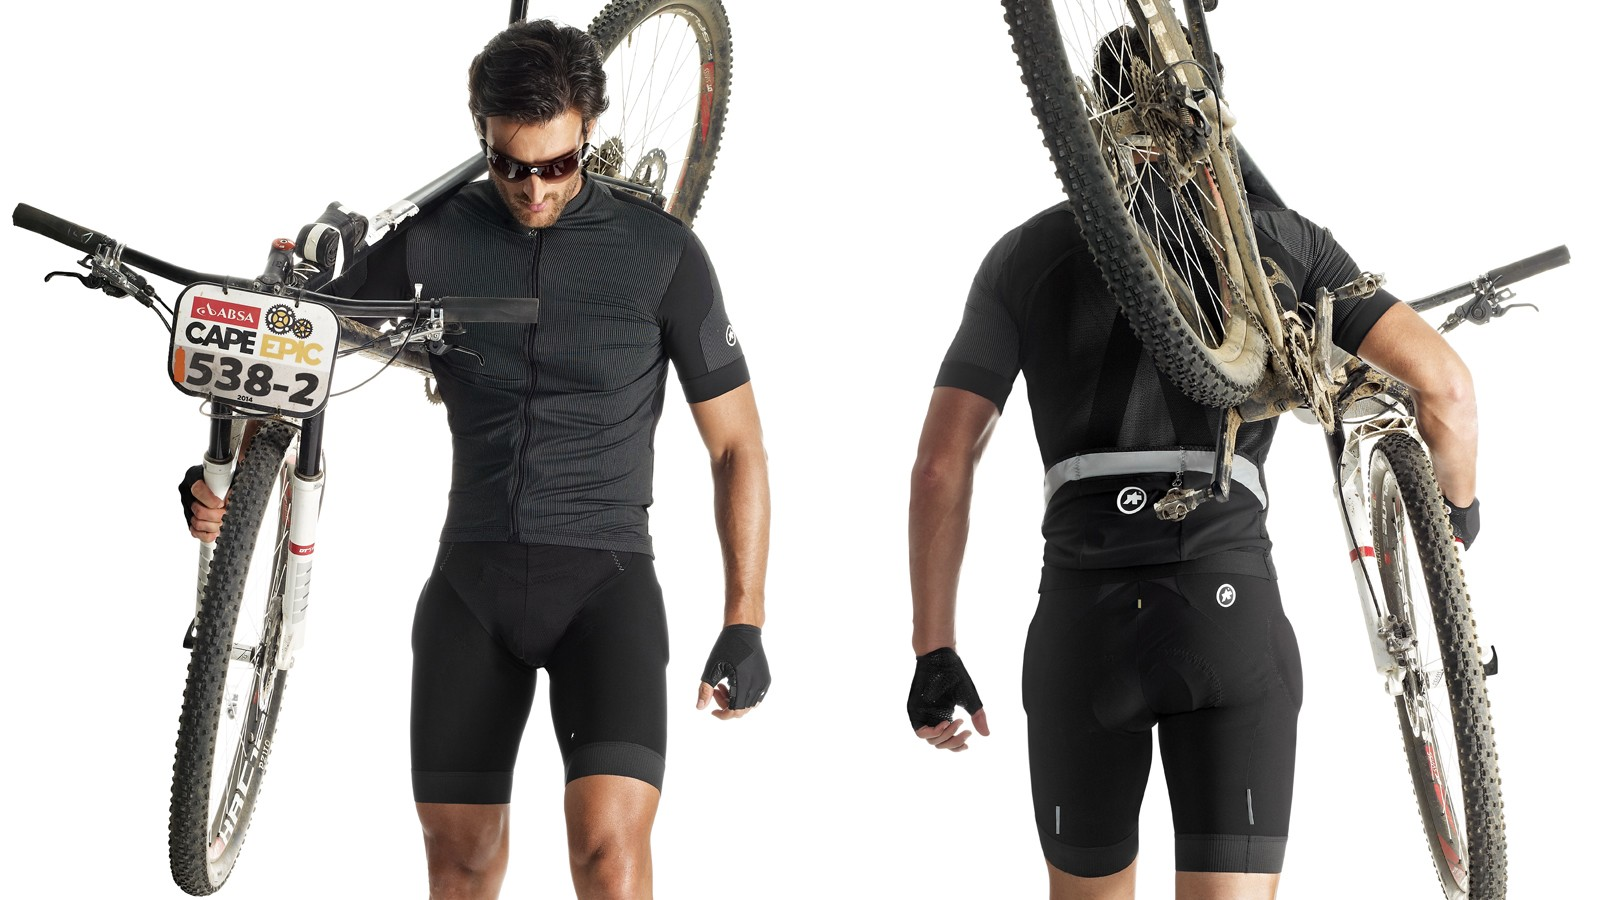 The construction of Assos SS.RallyTrekkingJersey_Evo7 is quite intricate, consisting of six different fabrics and 25 patterns